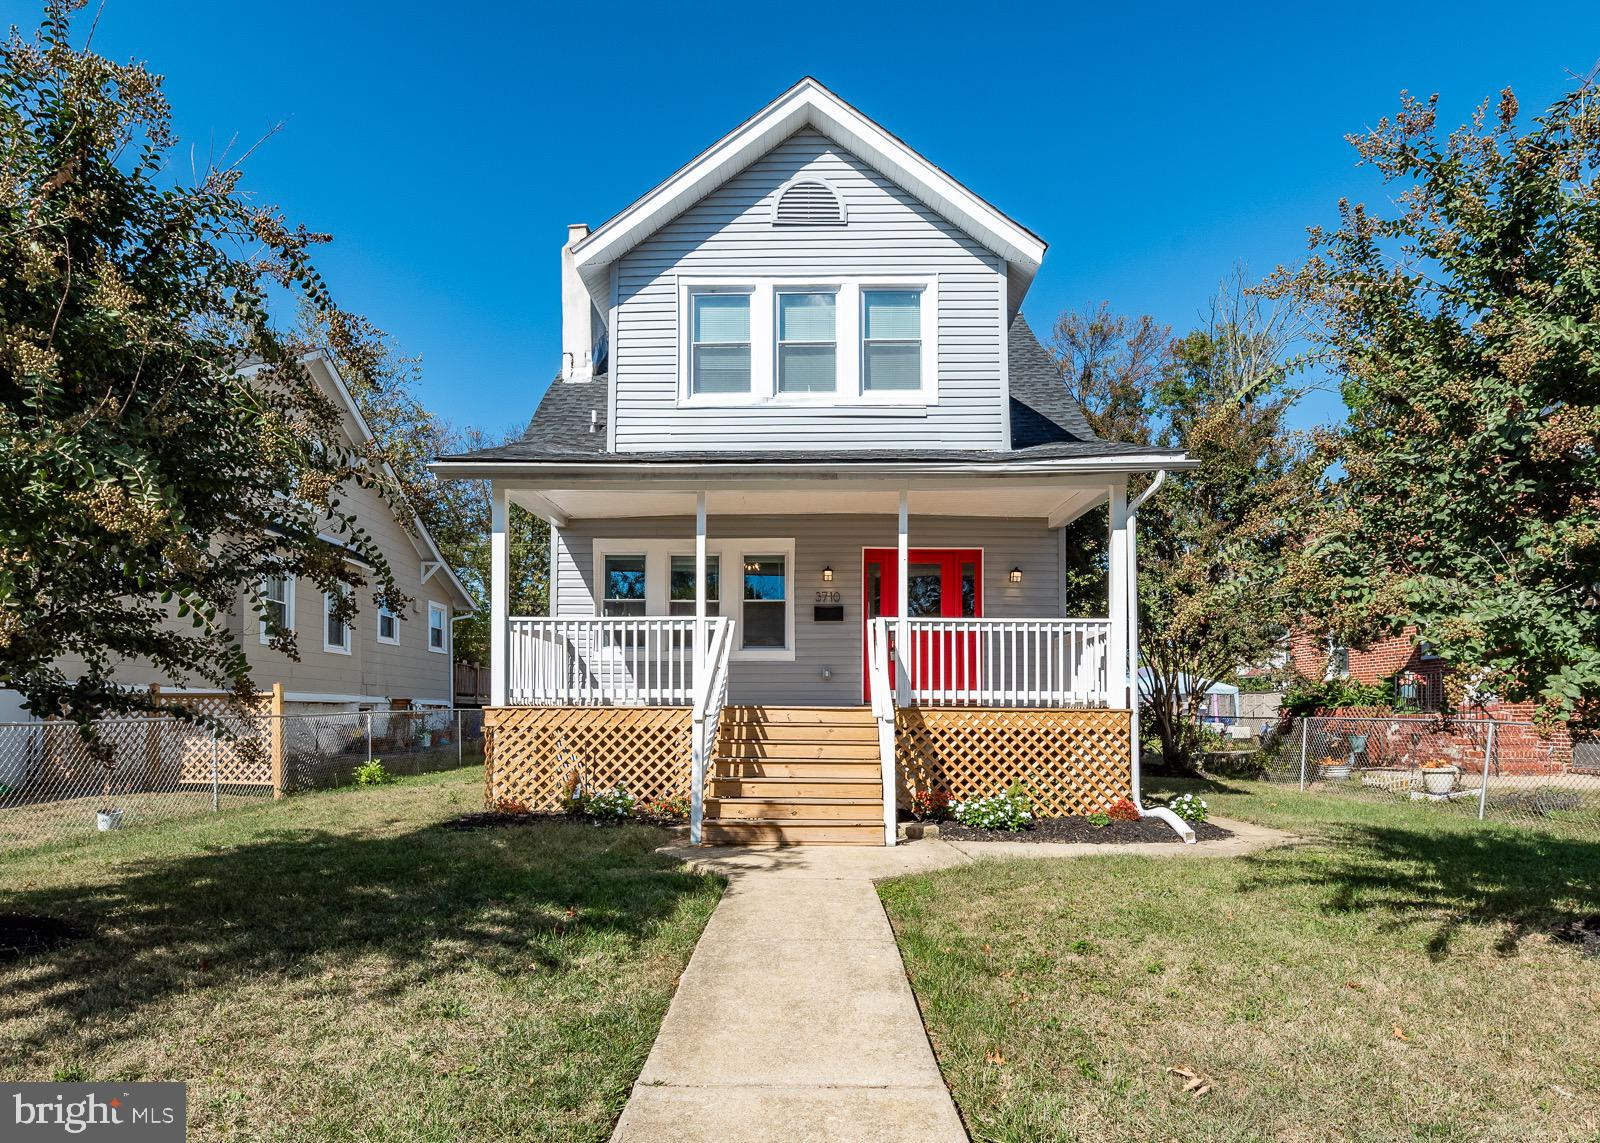 3710 BELLE Ave, Baltimore, MD, 21215